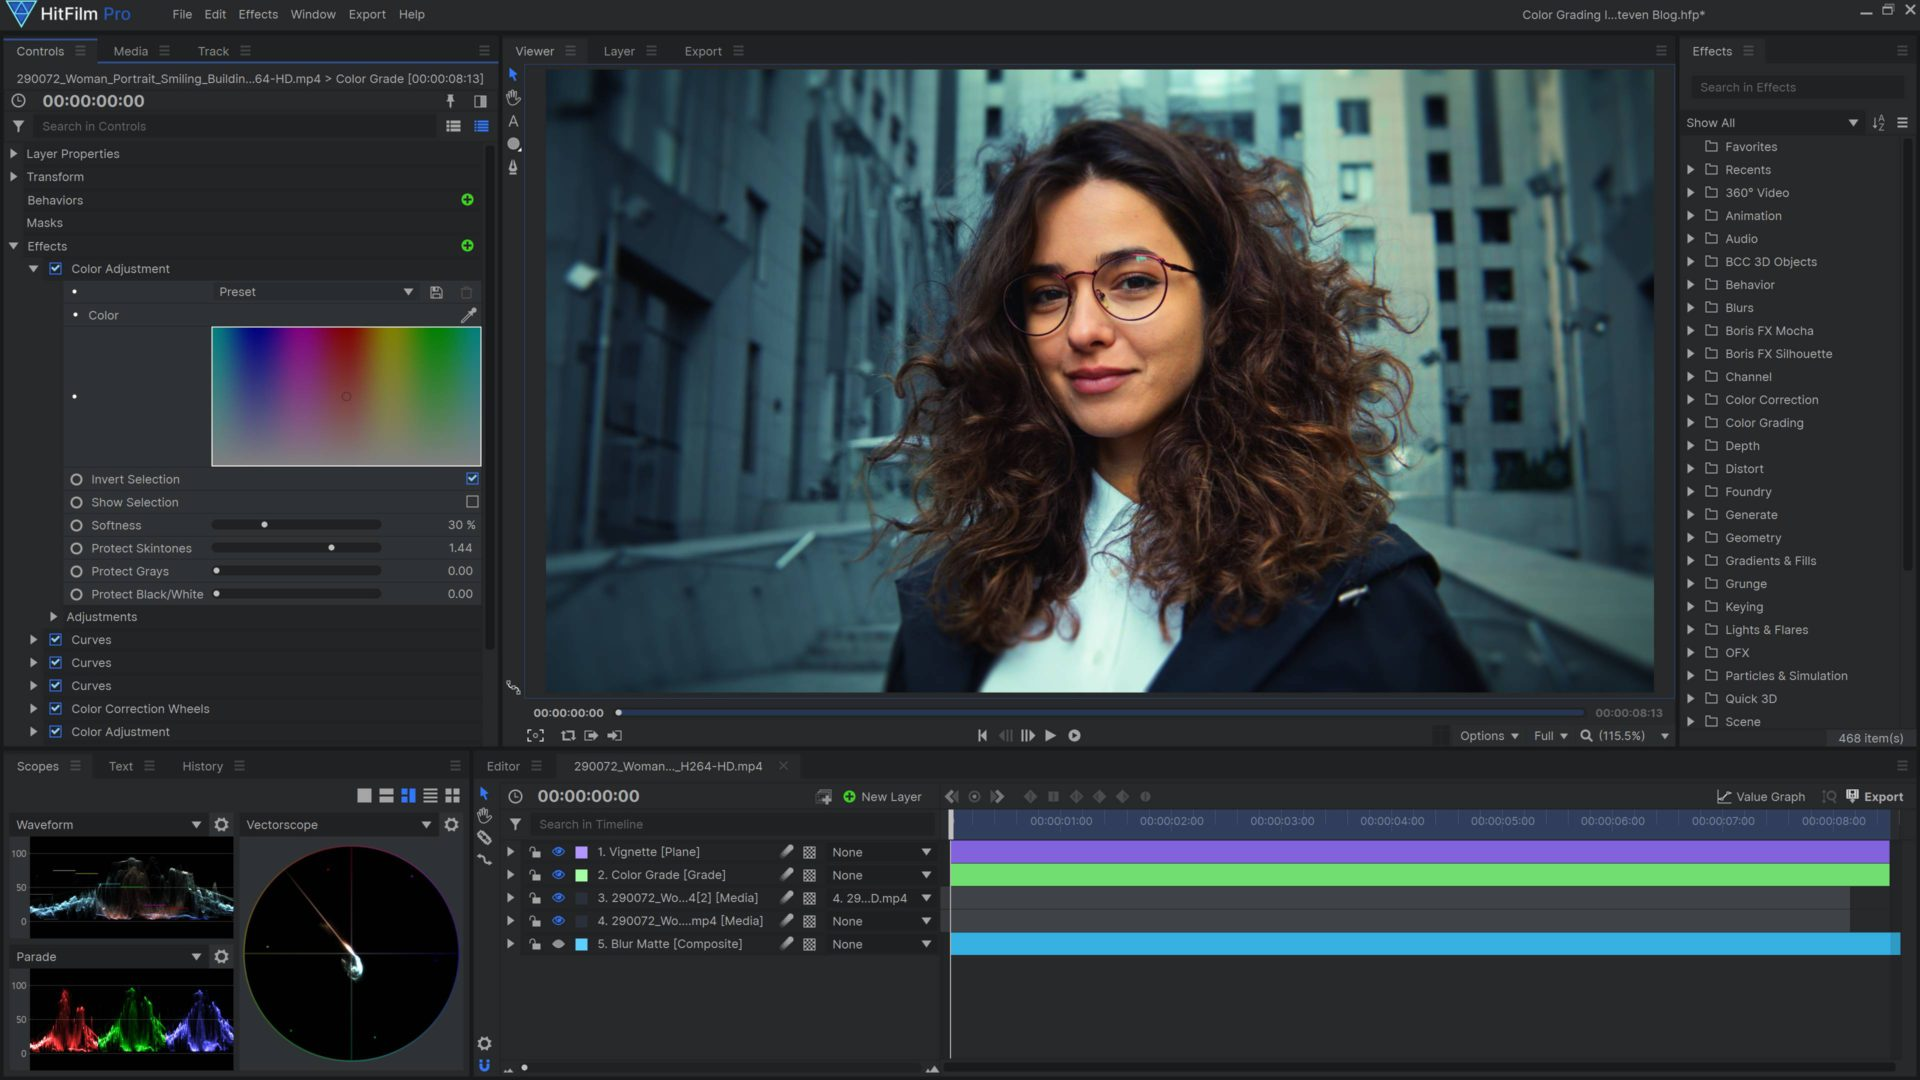 color correcting skin tones in HitFilm Pro with the color adjustment effect orange and teal color grade